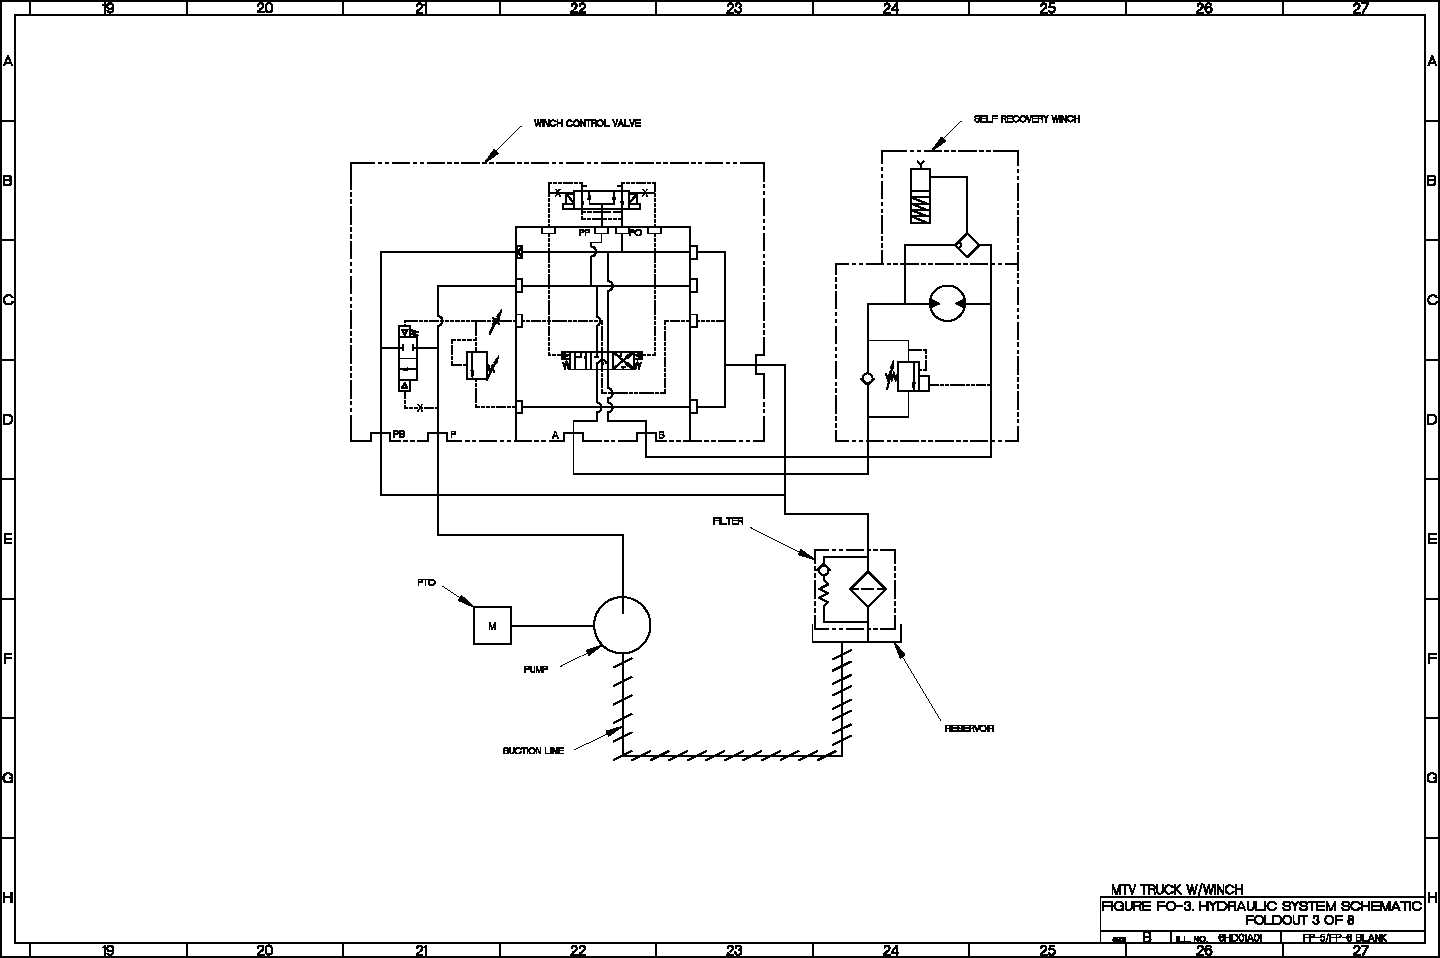 Figure Fo 3 Hydraulic System Schematic Foldout 3 Of 8